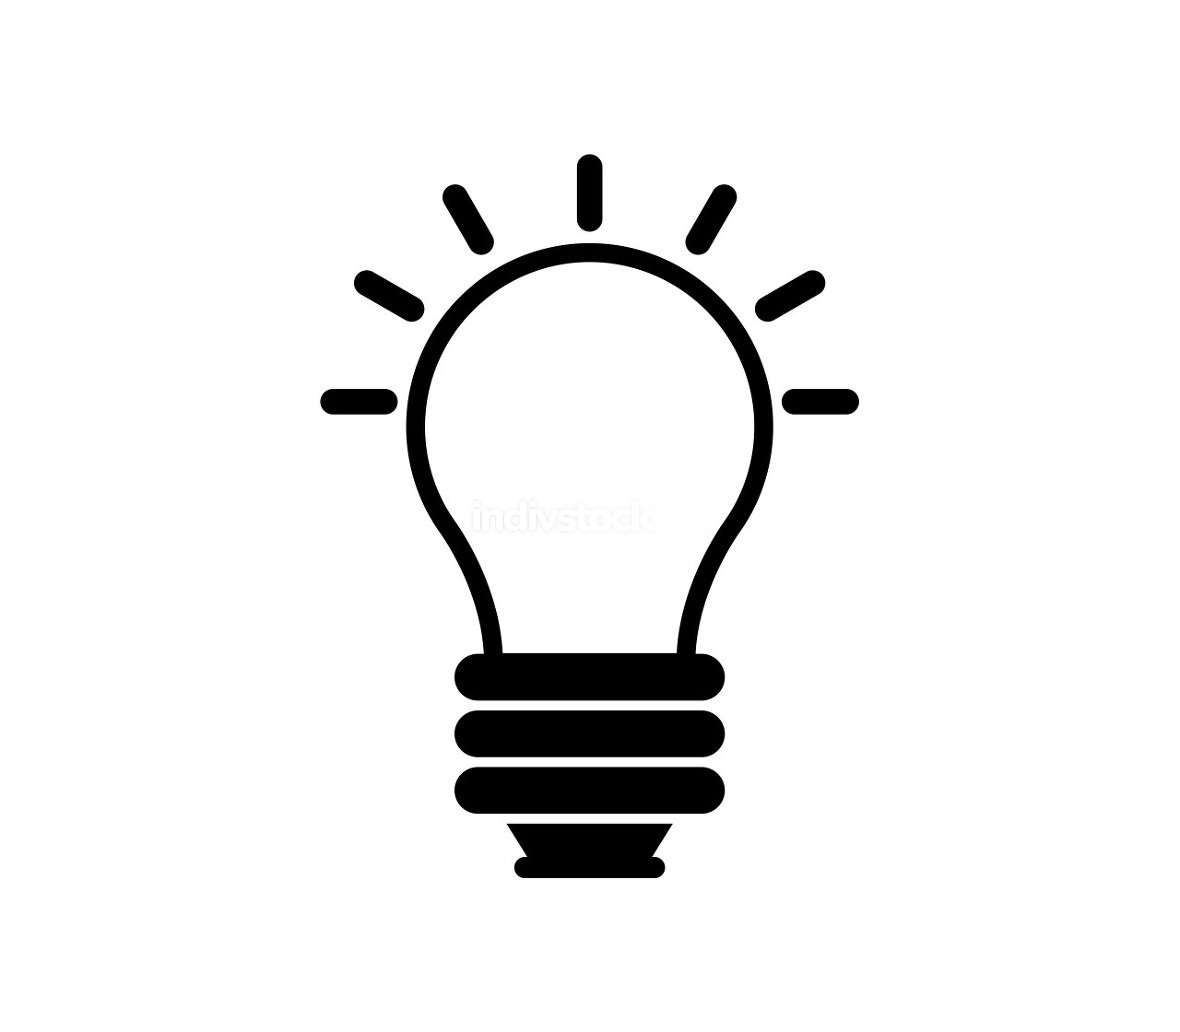 light bulb icon illustrated in vector on white background